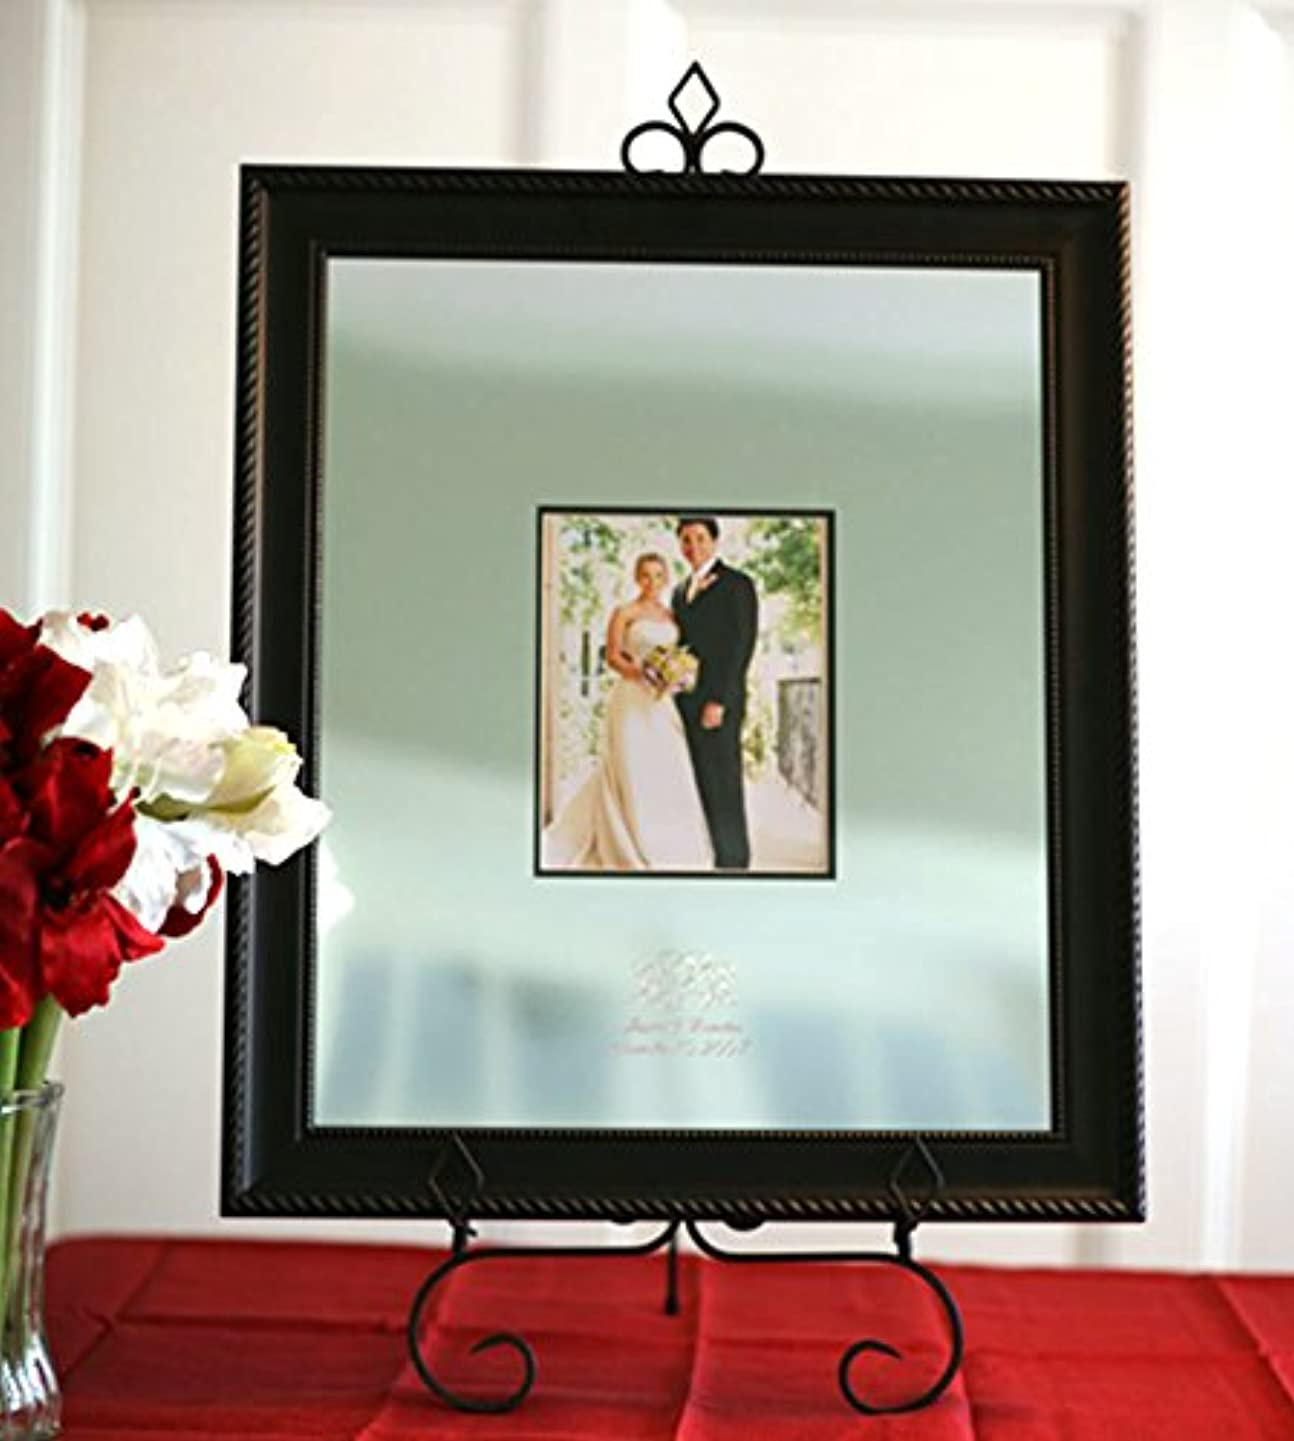 Signature Keepsakes Frame Engravable Signature Mat Guest Book, Large, Silver/Black